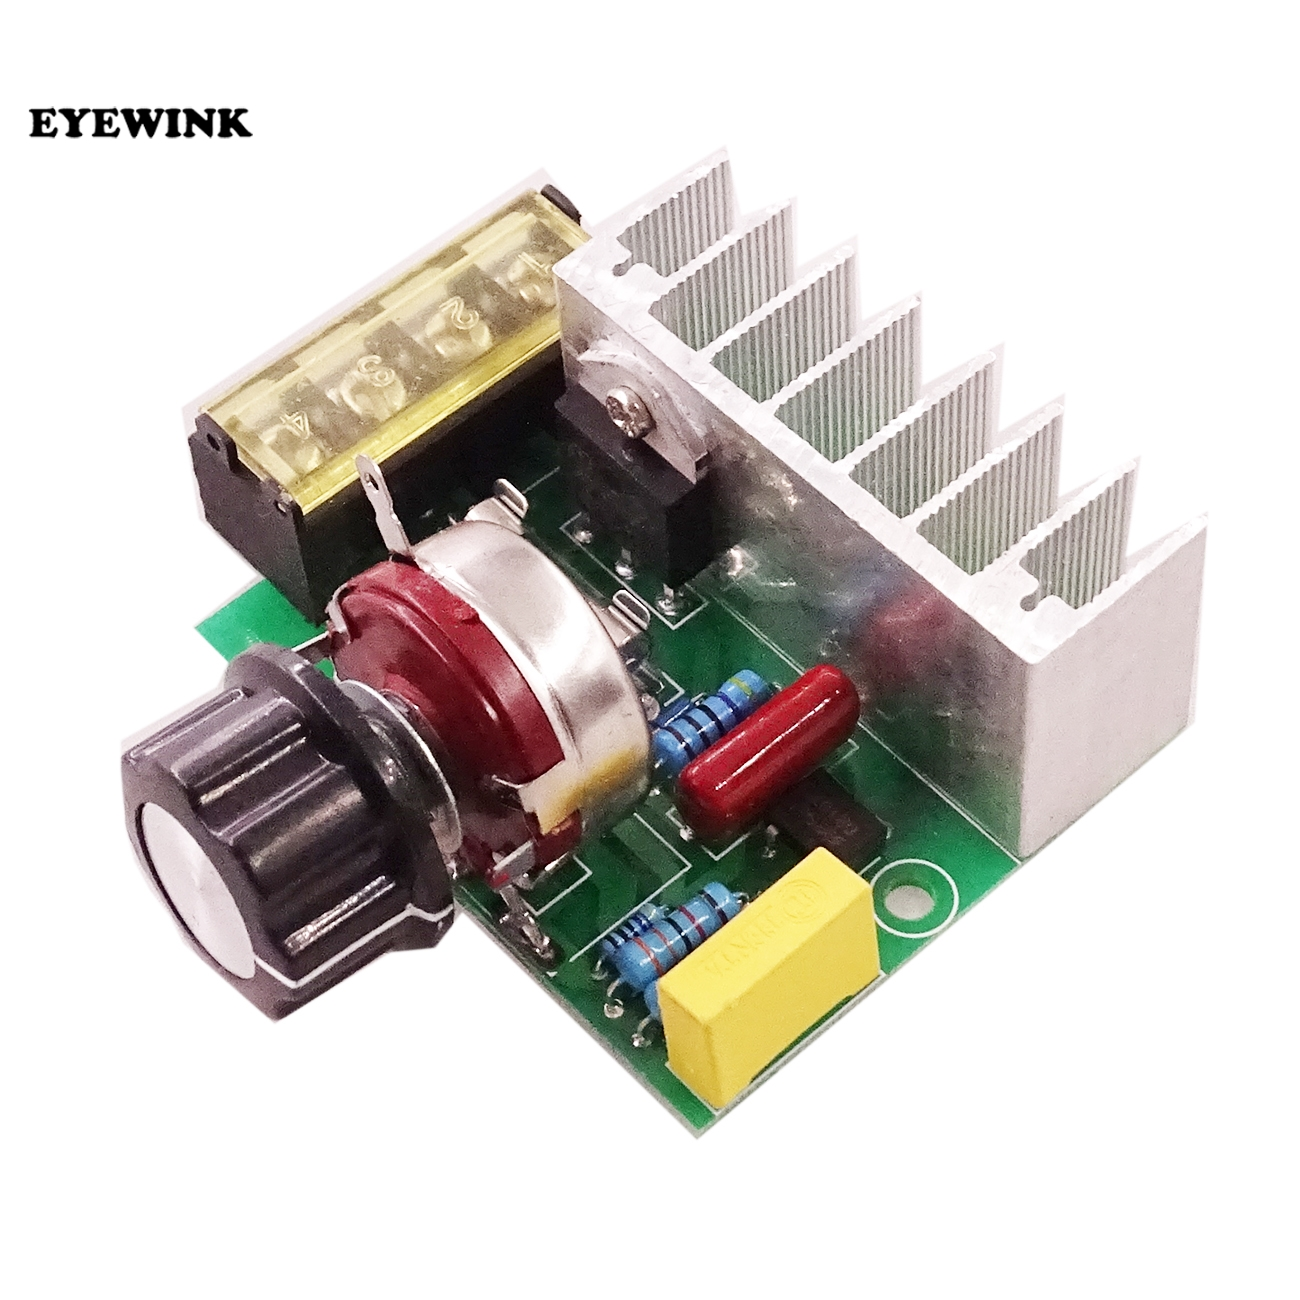 Electronics Production Machinery Eyewink 1pcs/lot 4000w Ac 220v Scr Imported High Power Silicon Control Voltage Regulator Aiming Adjust Speed Thermoregulation Attractive And Durable